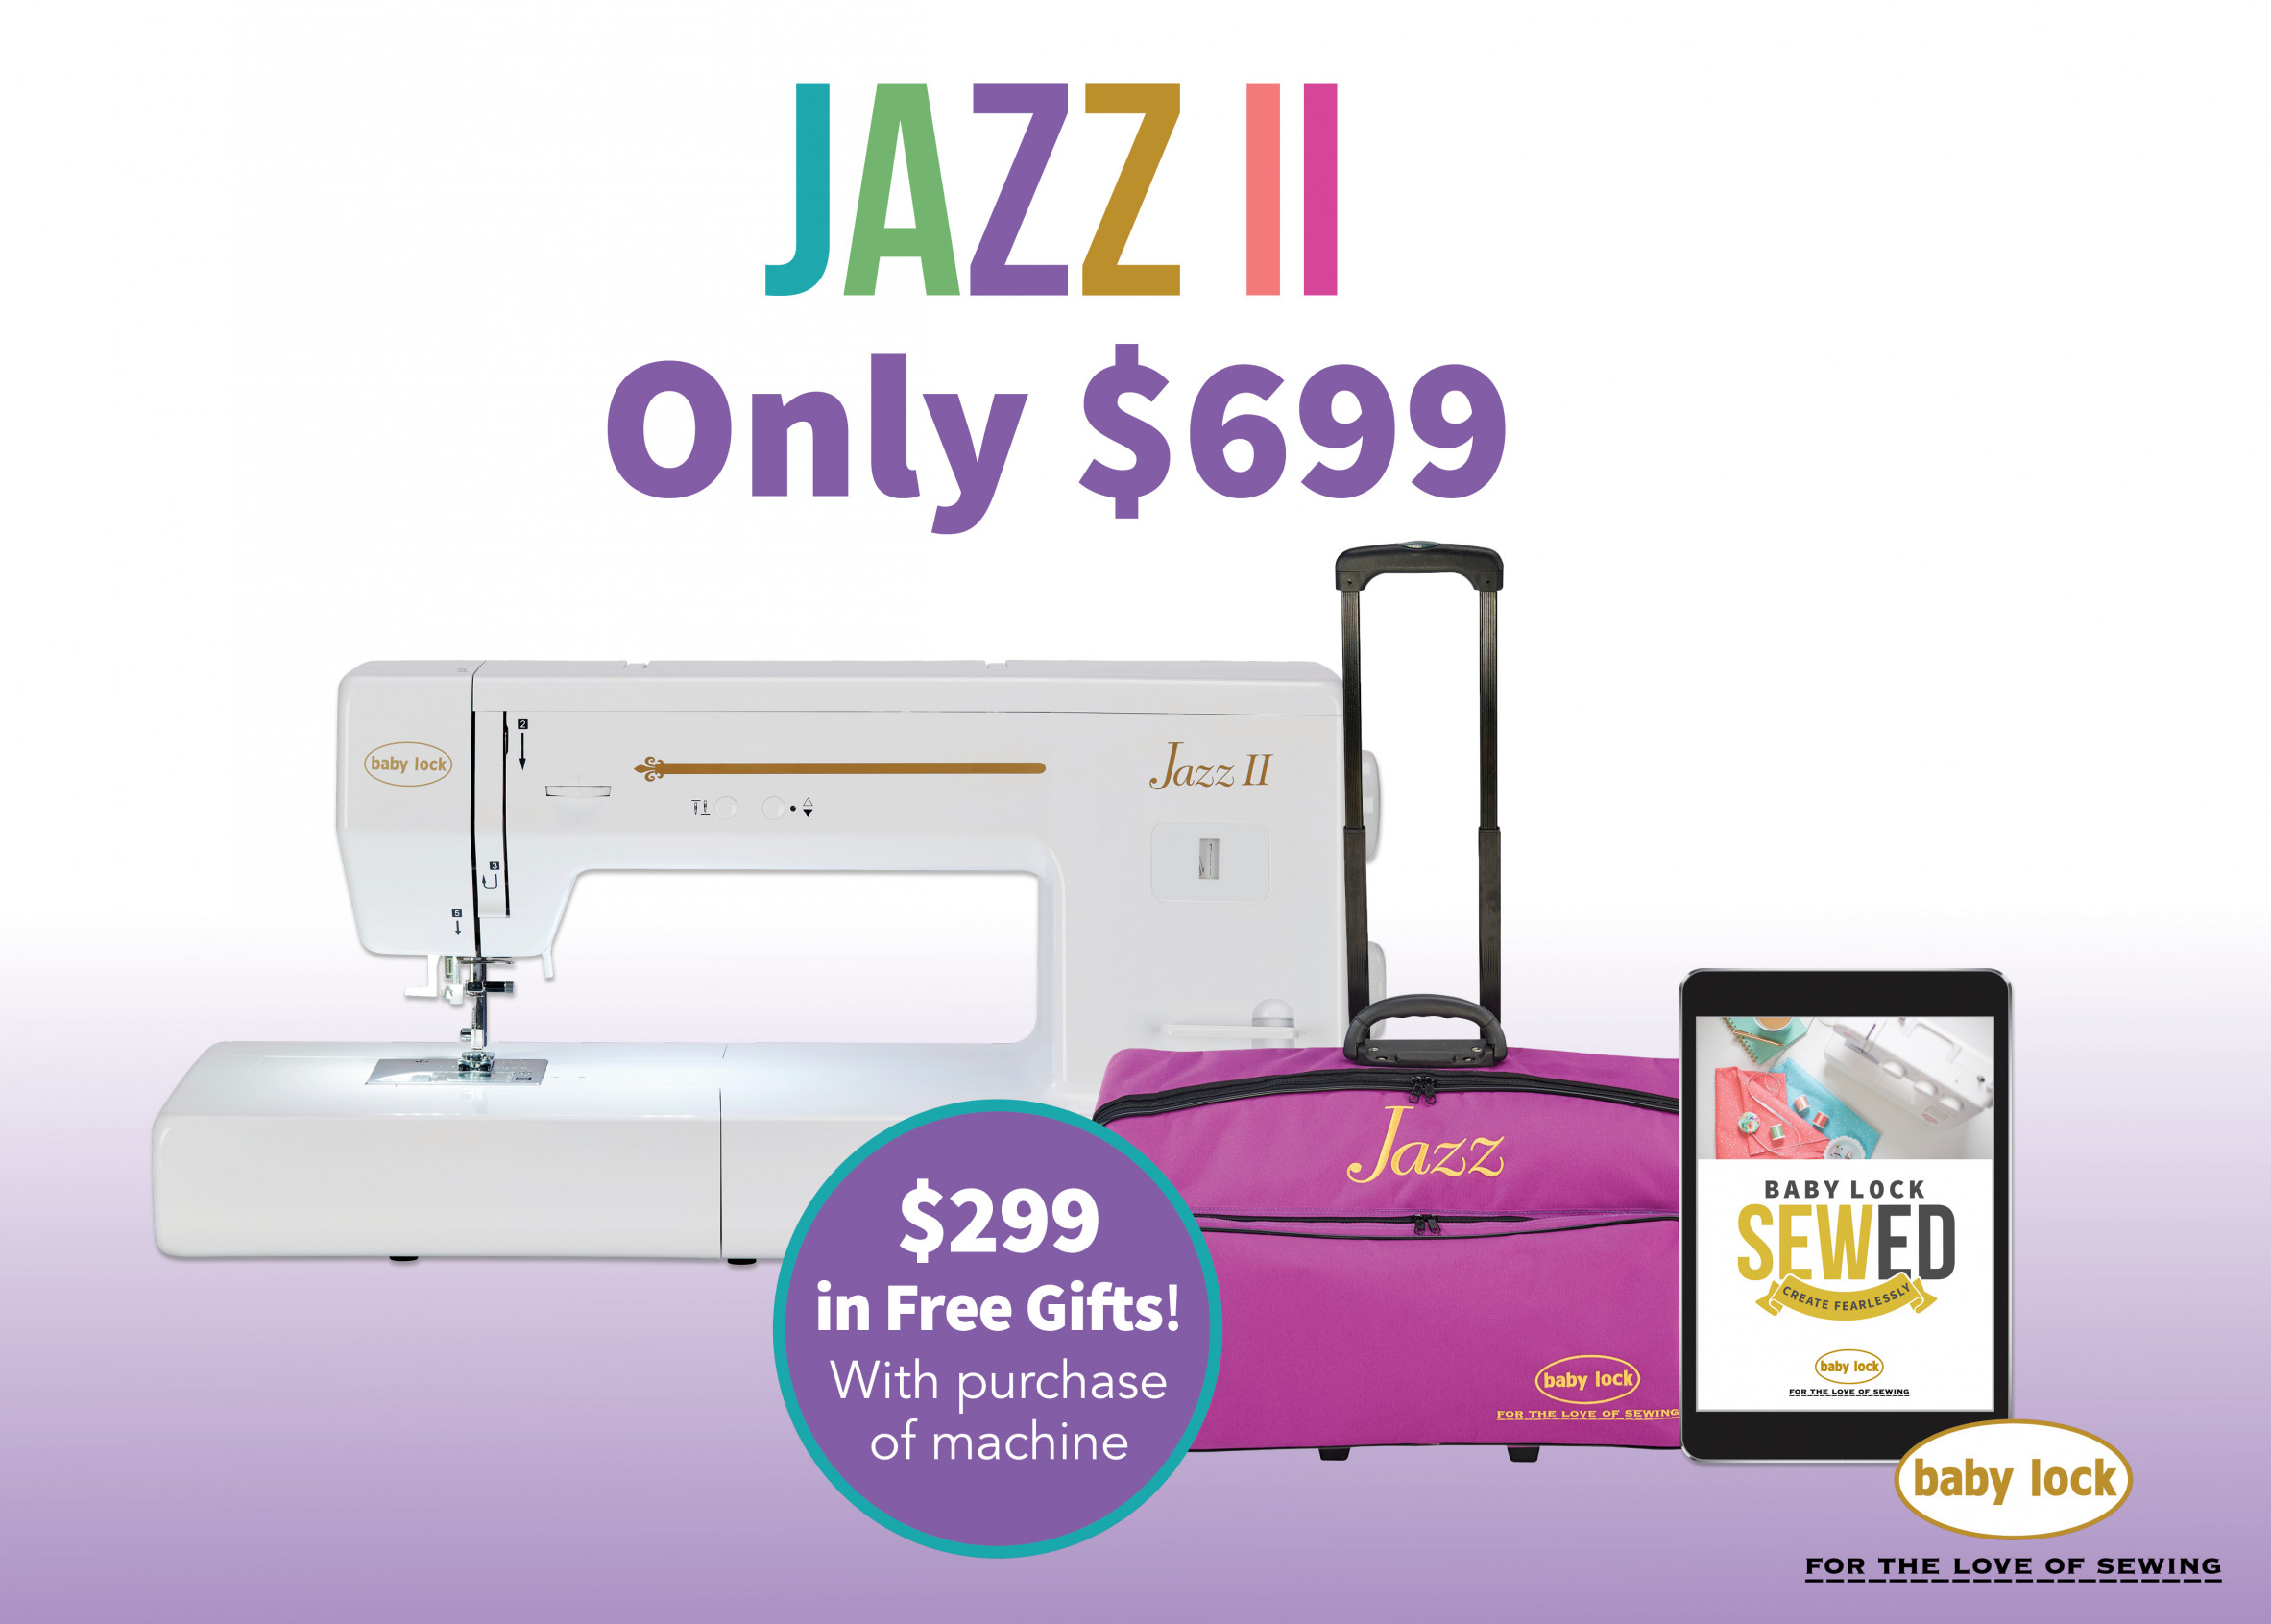 Baby Lock Jazz 2 quilting and embroidery machine special offer